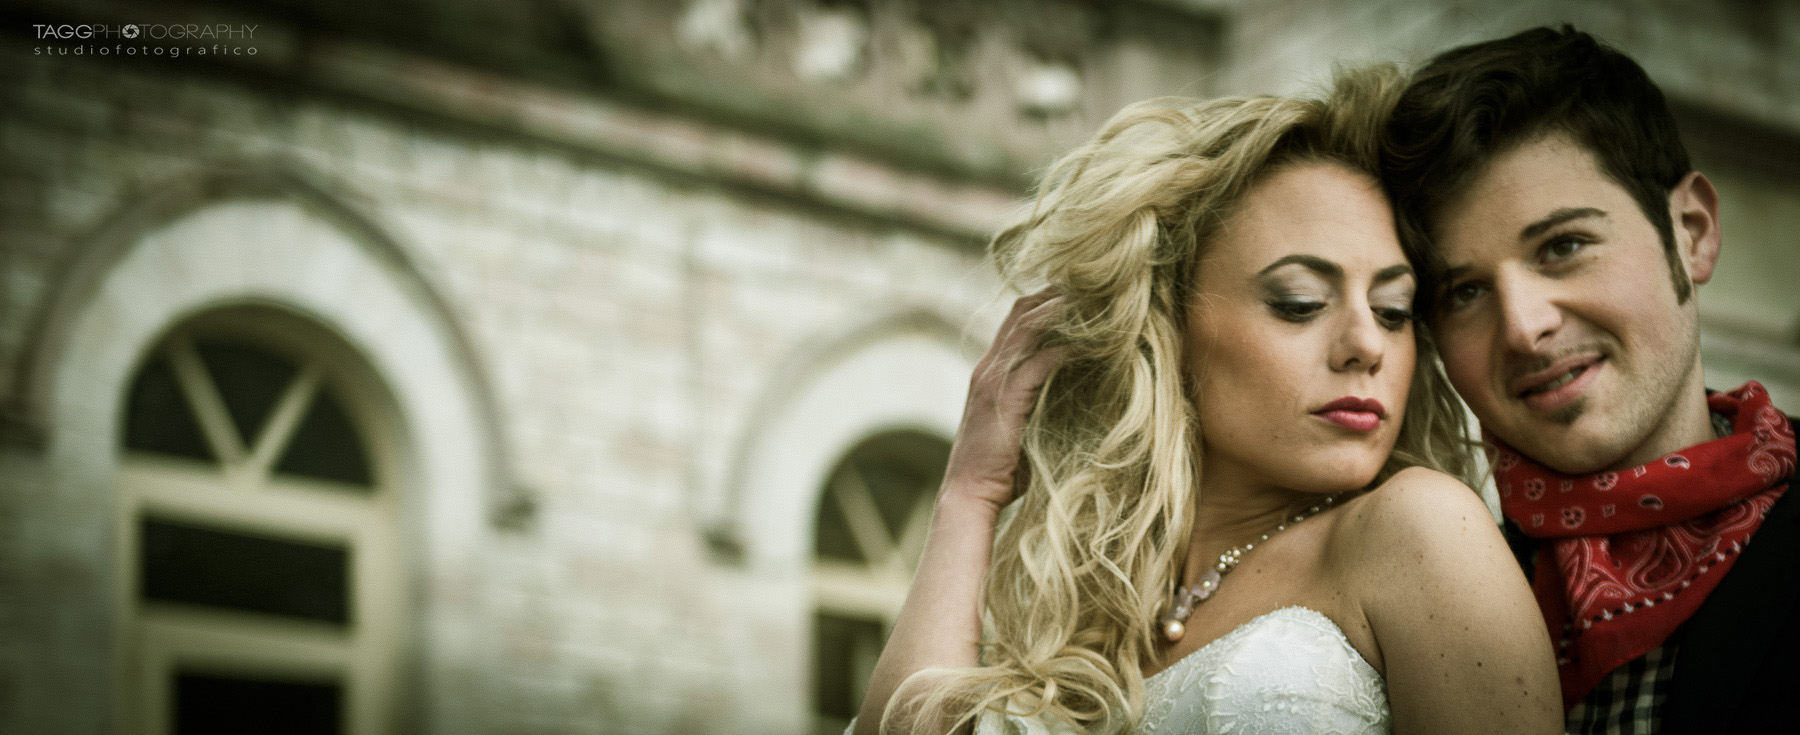 wedding-umbria-tagg-photography